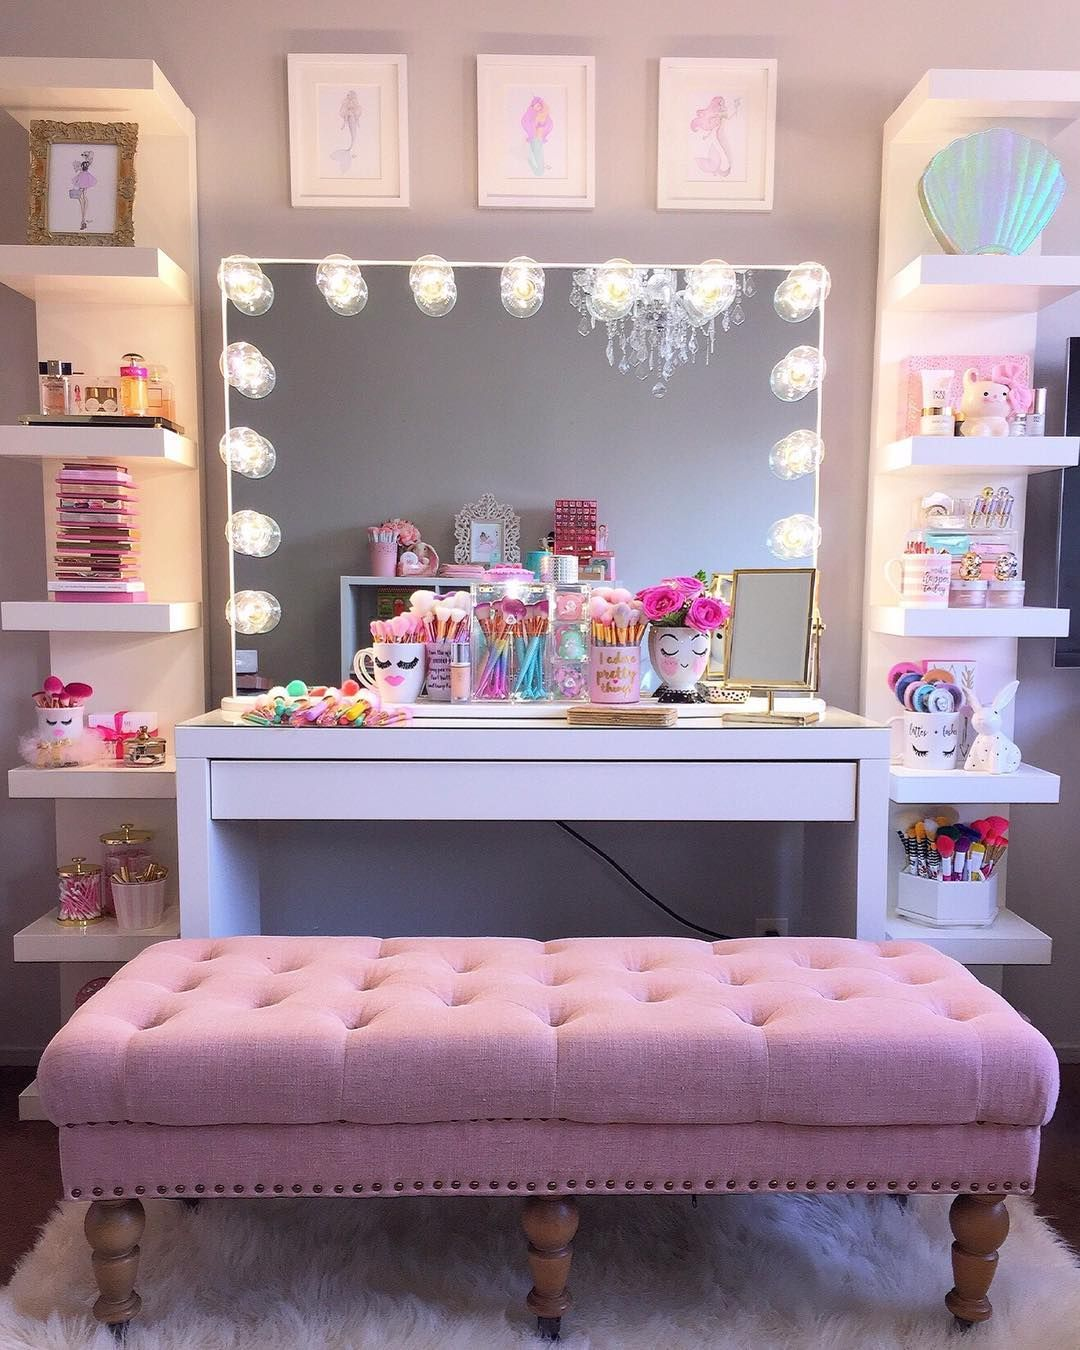 Diy Room Decor And Organization Ideas Diy Makeup Room Ideas Organizer Storage And Decorating